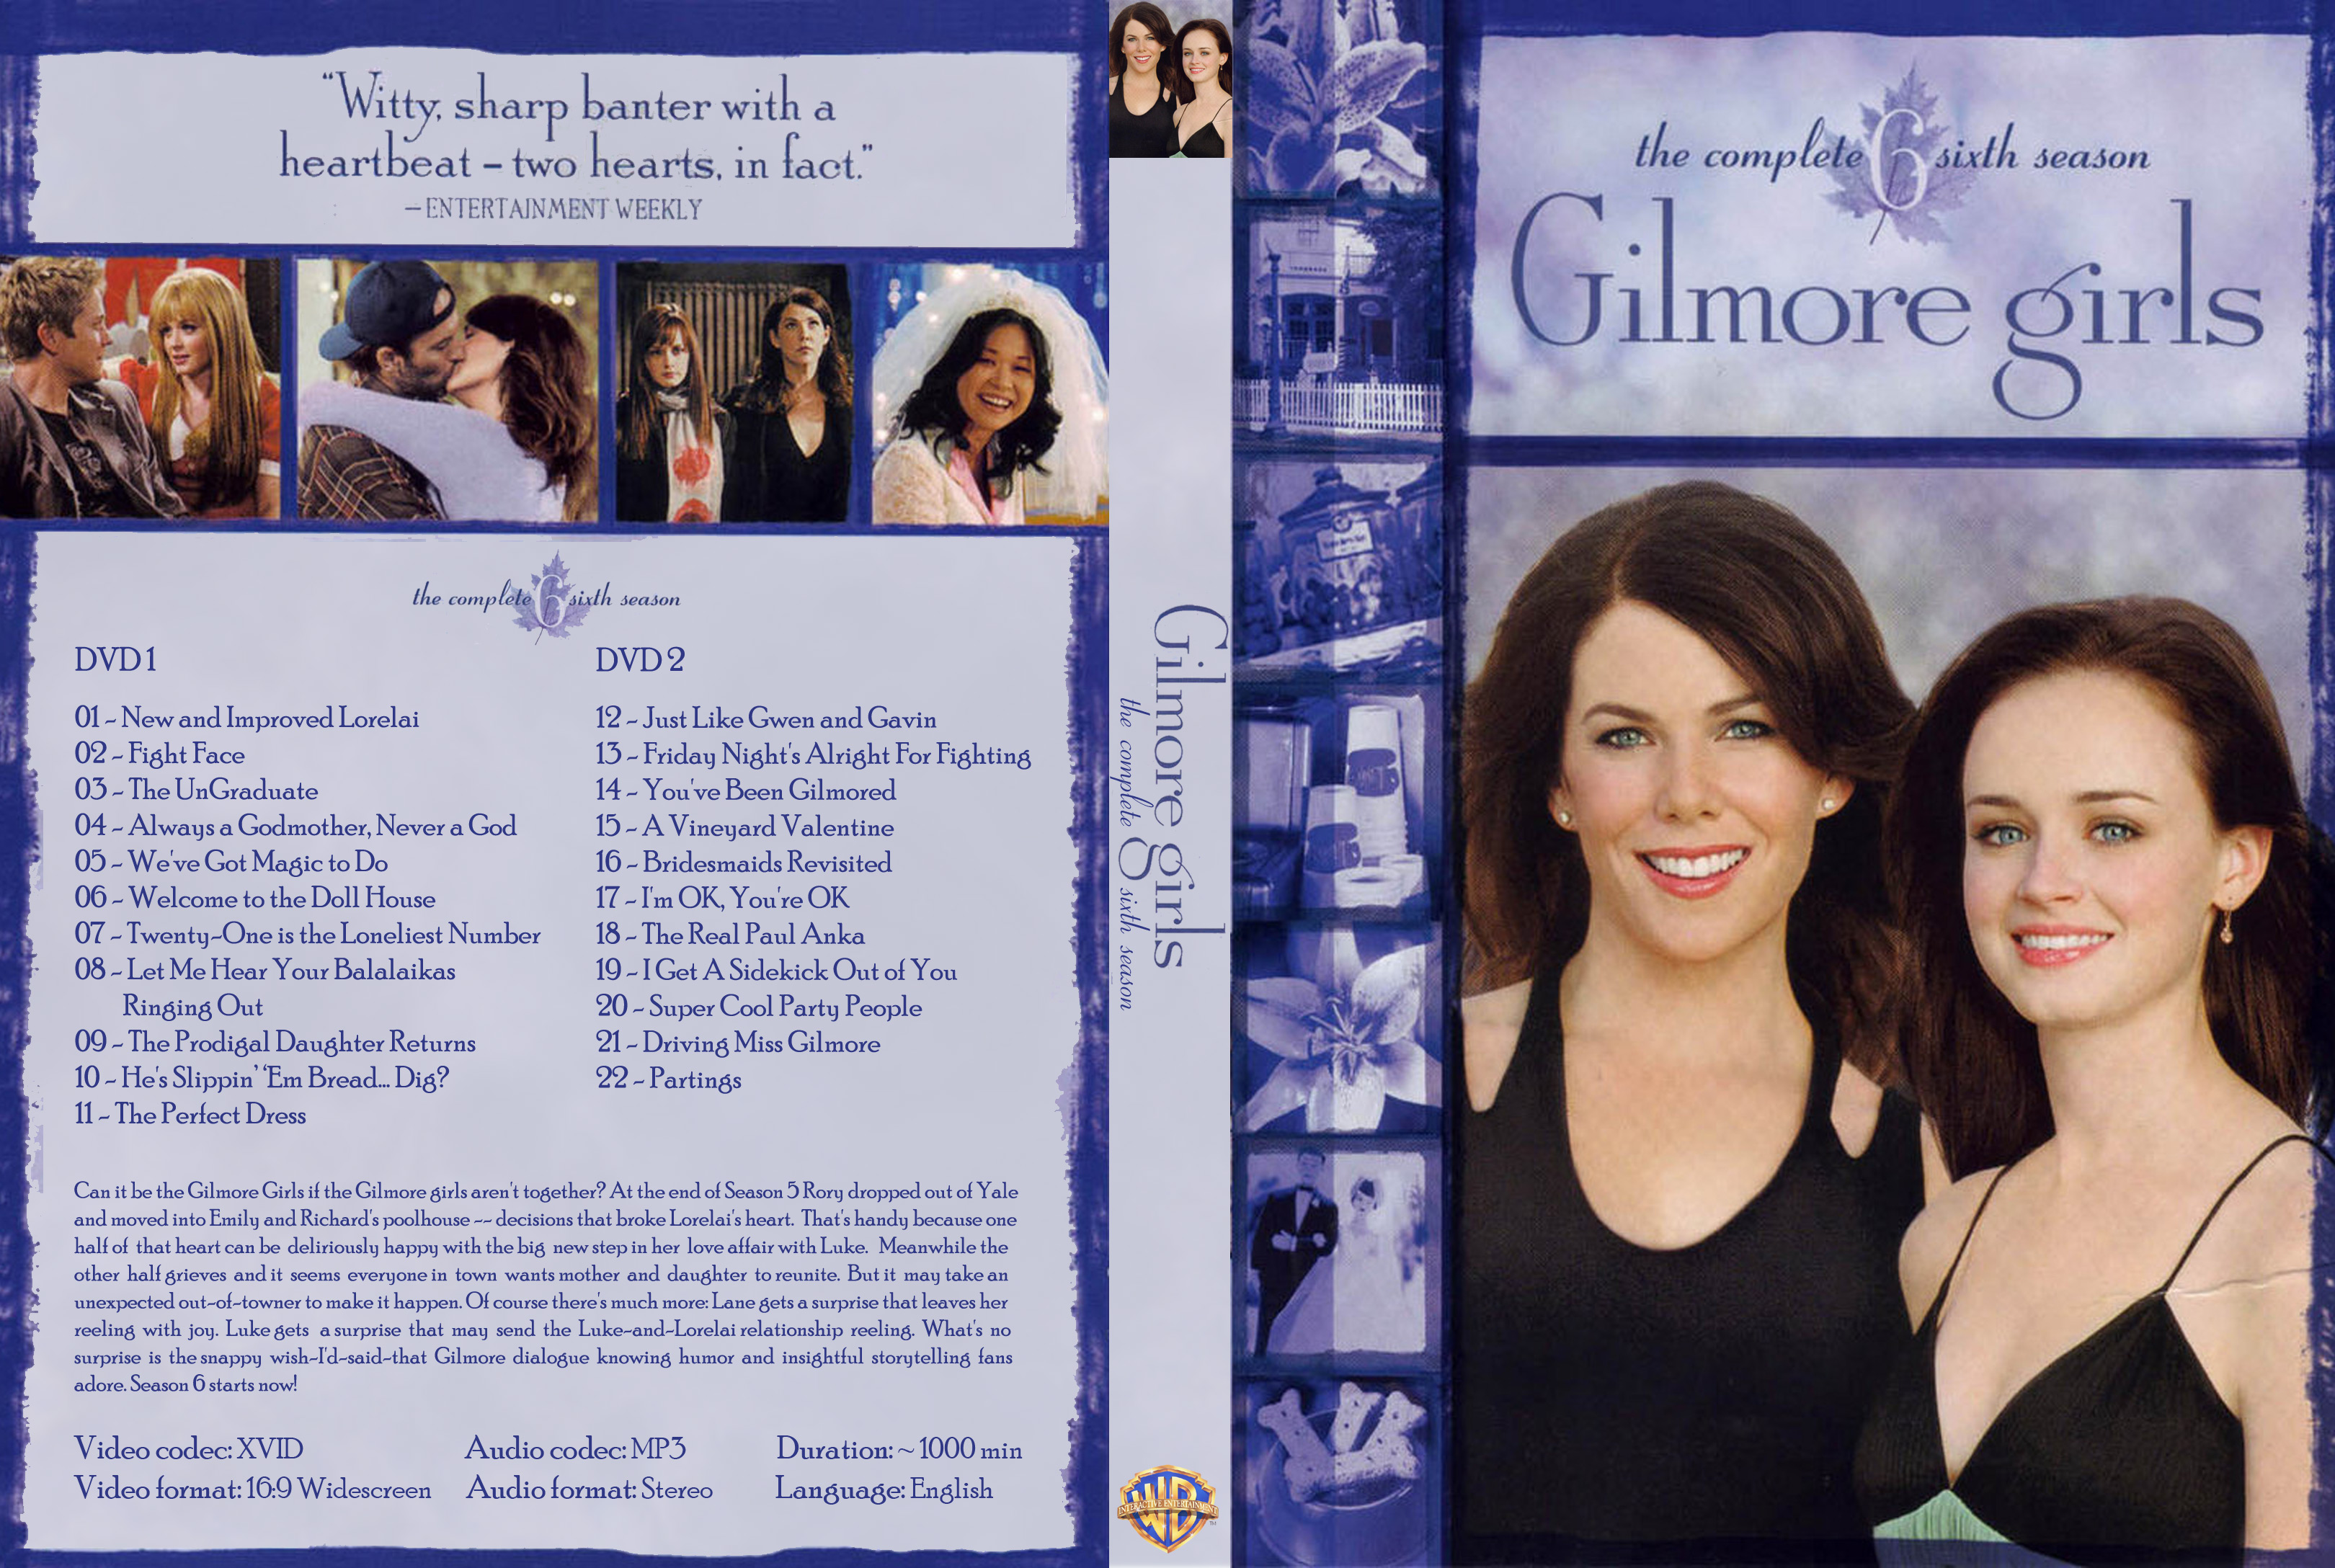 gilmore girls download season: